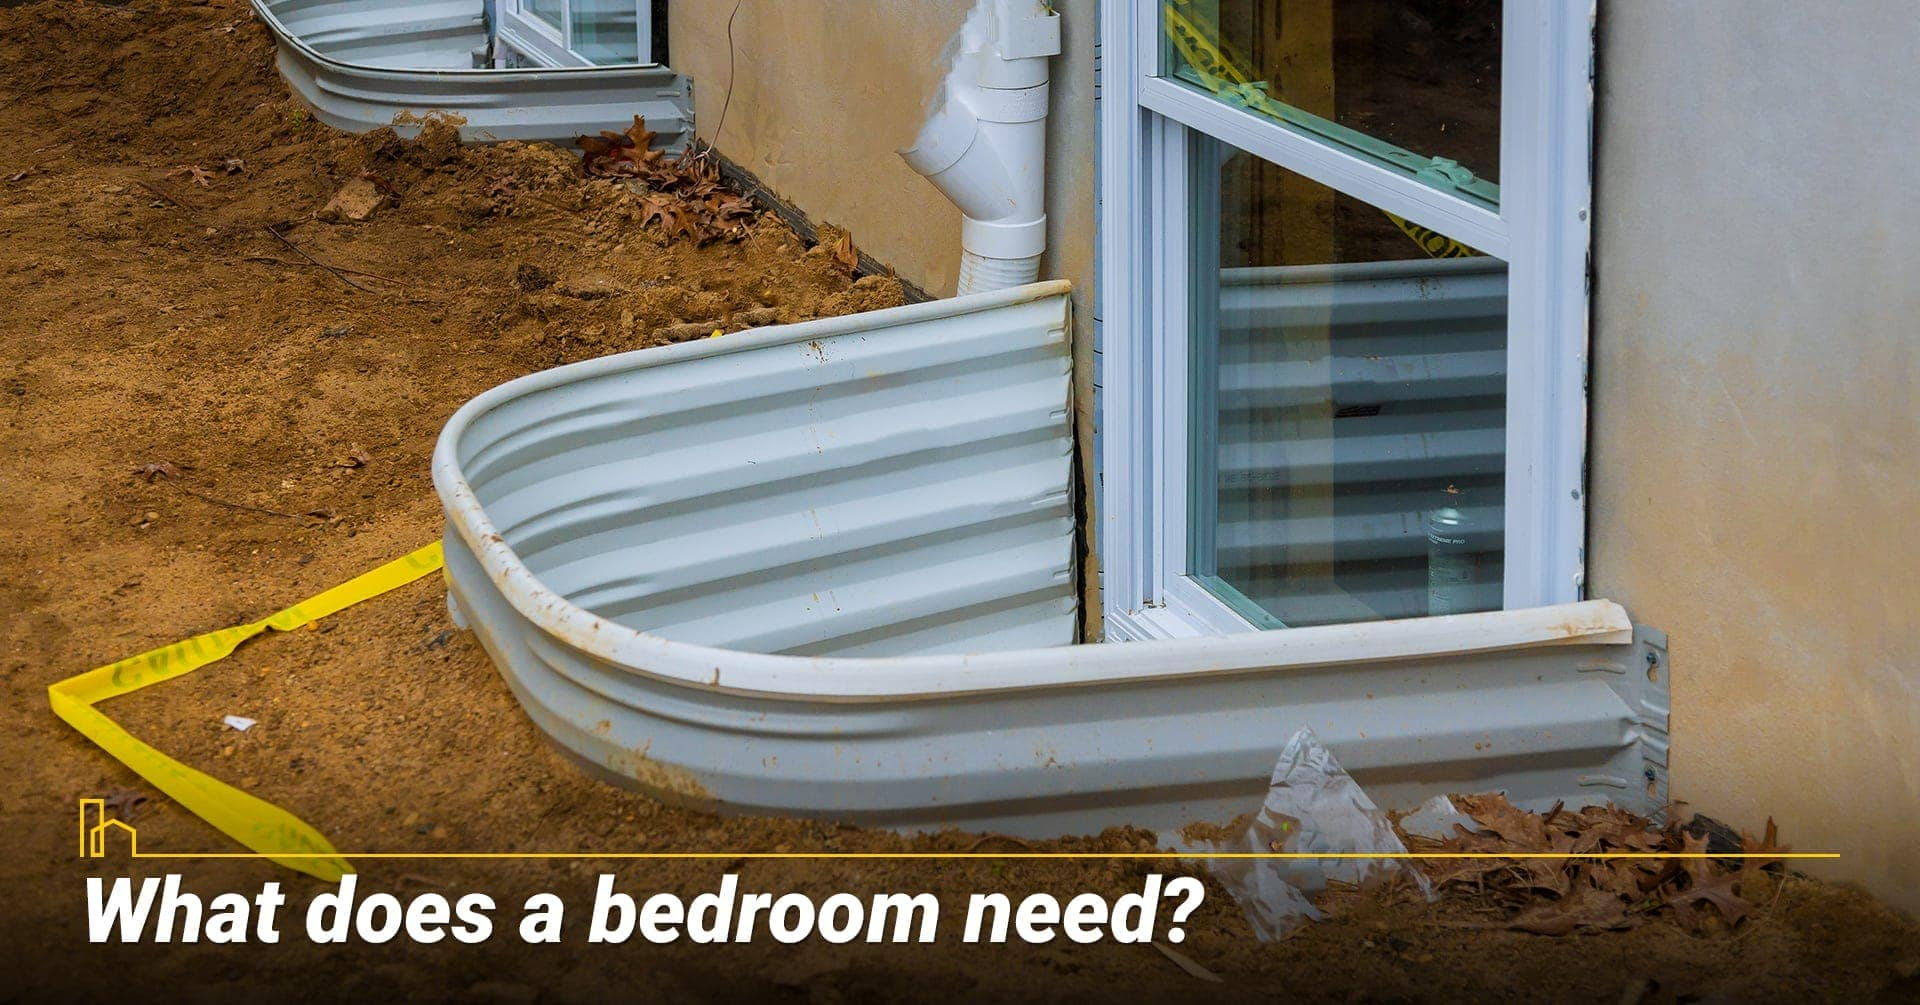 What does a bedroom need? things needed for a bedroom in the basement